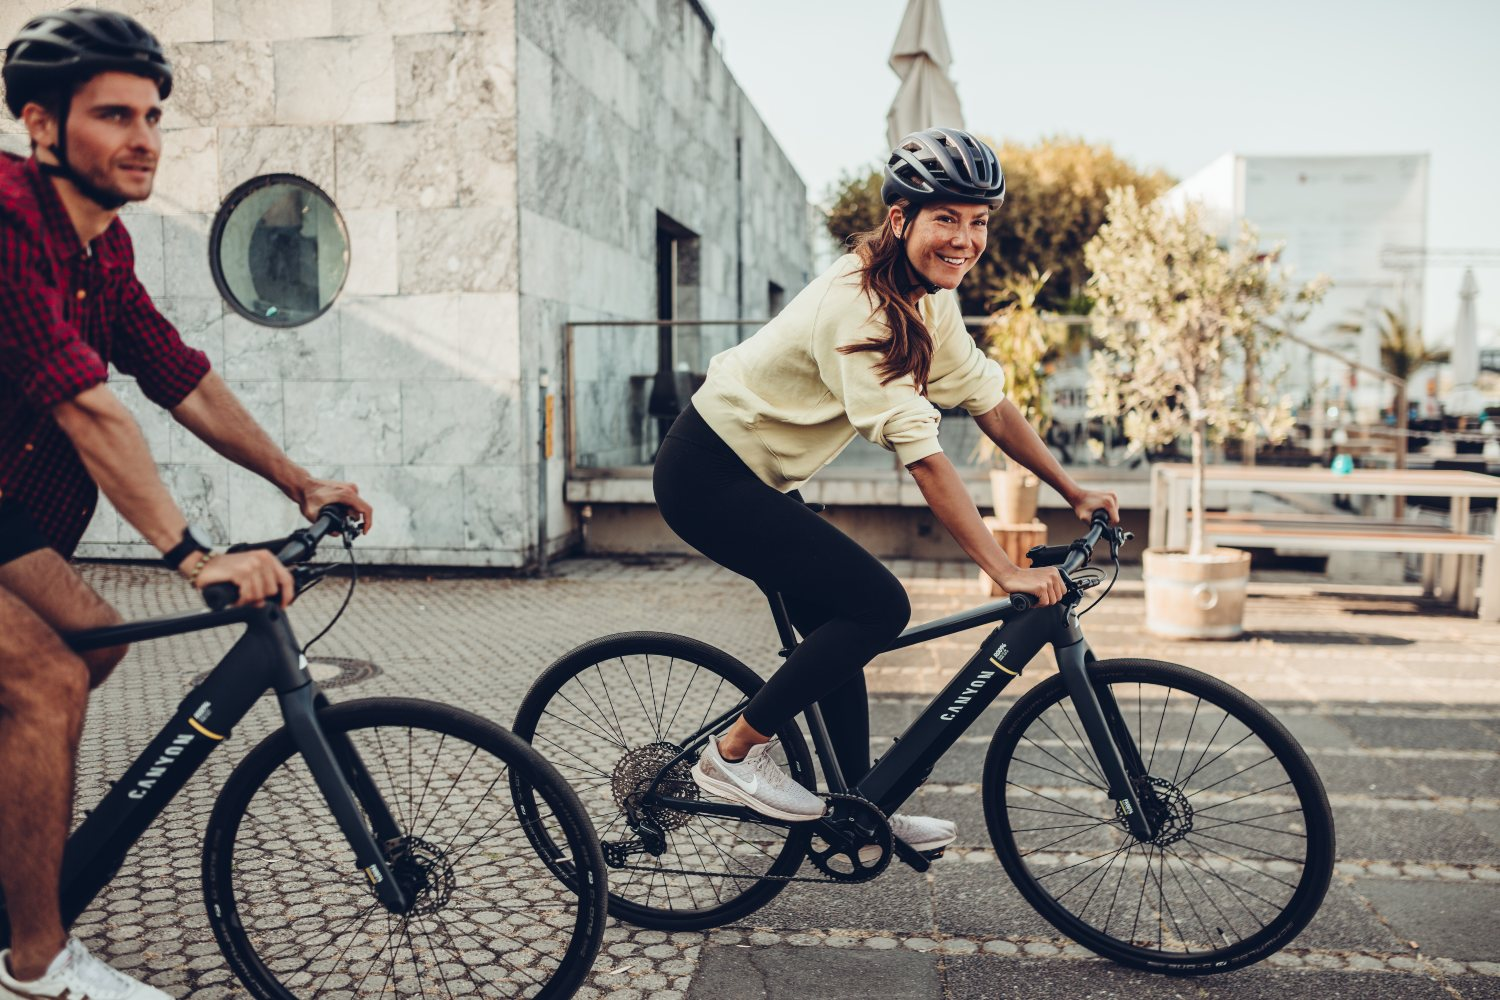 Canyon presenta la versión de 2021 de su e-bike híbrida, la Roadlite:ON